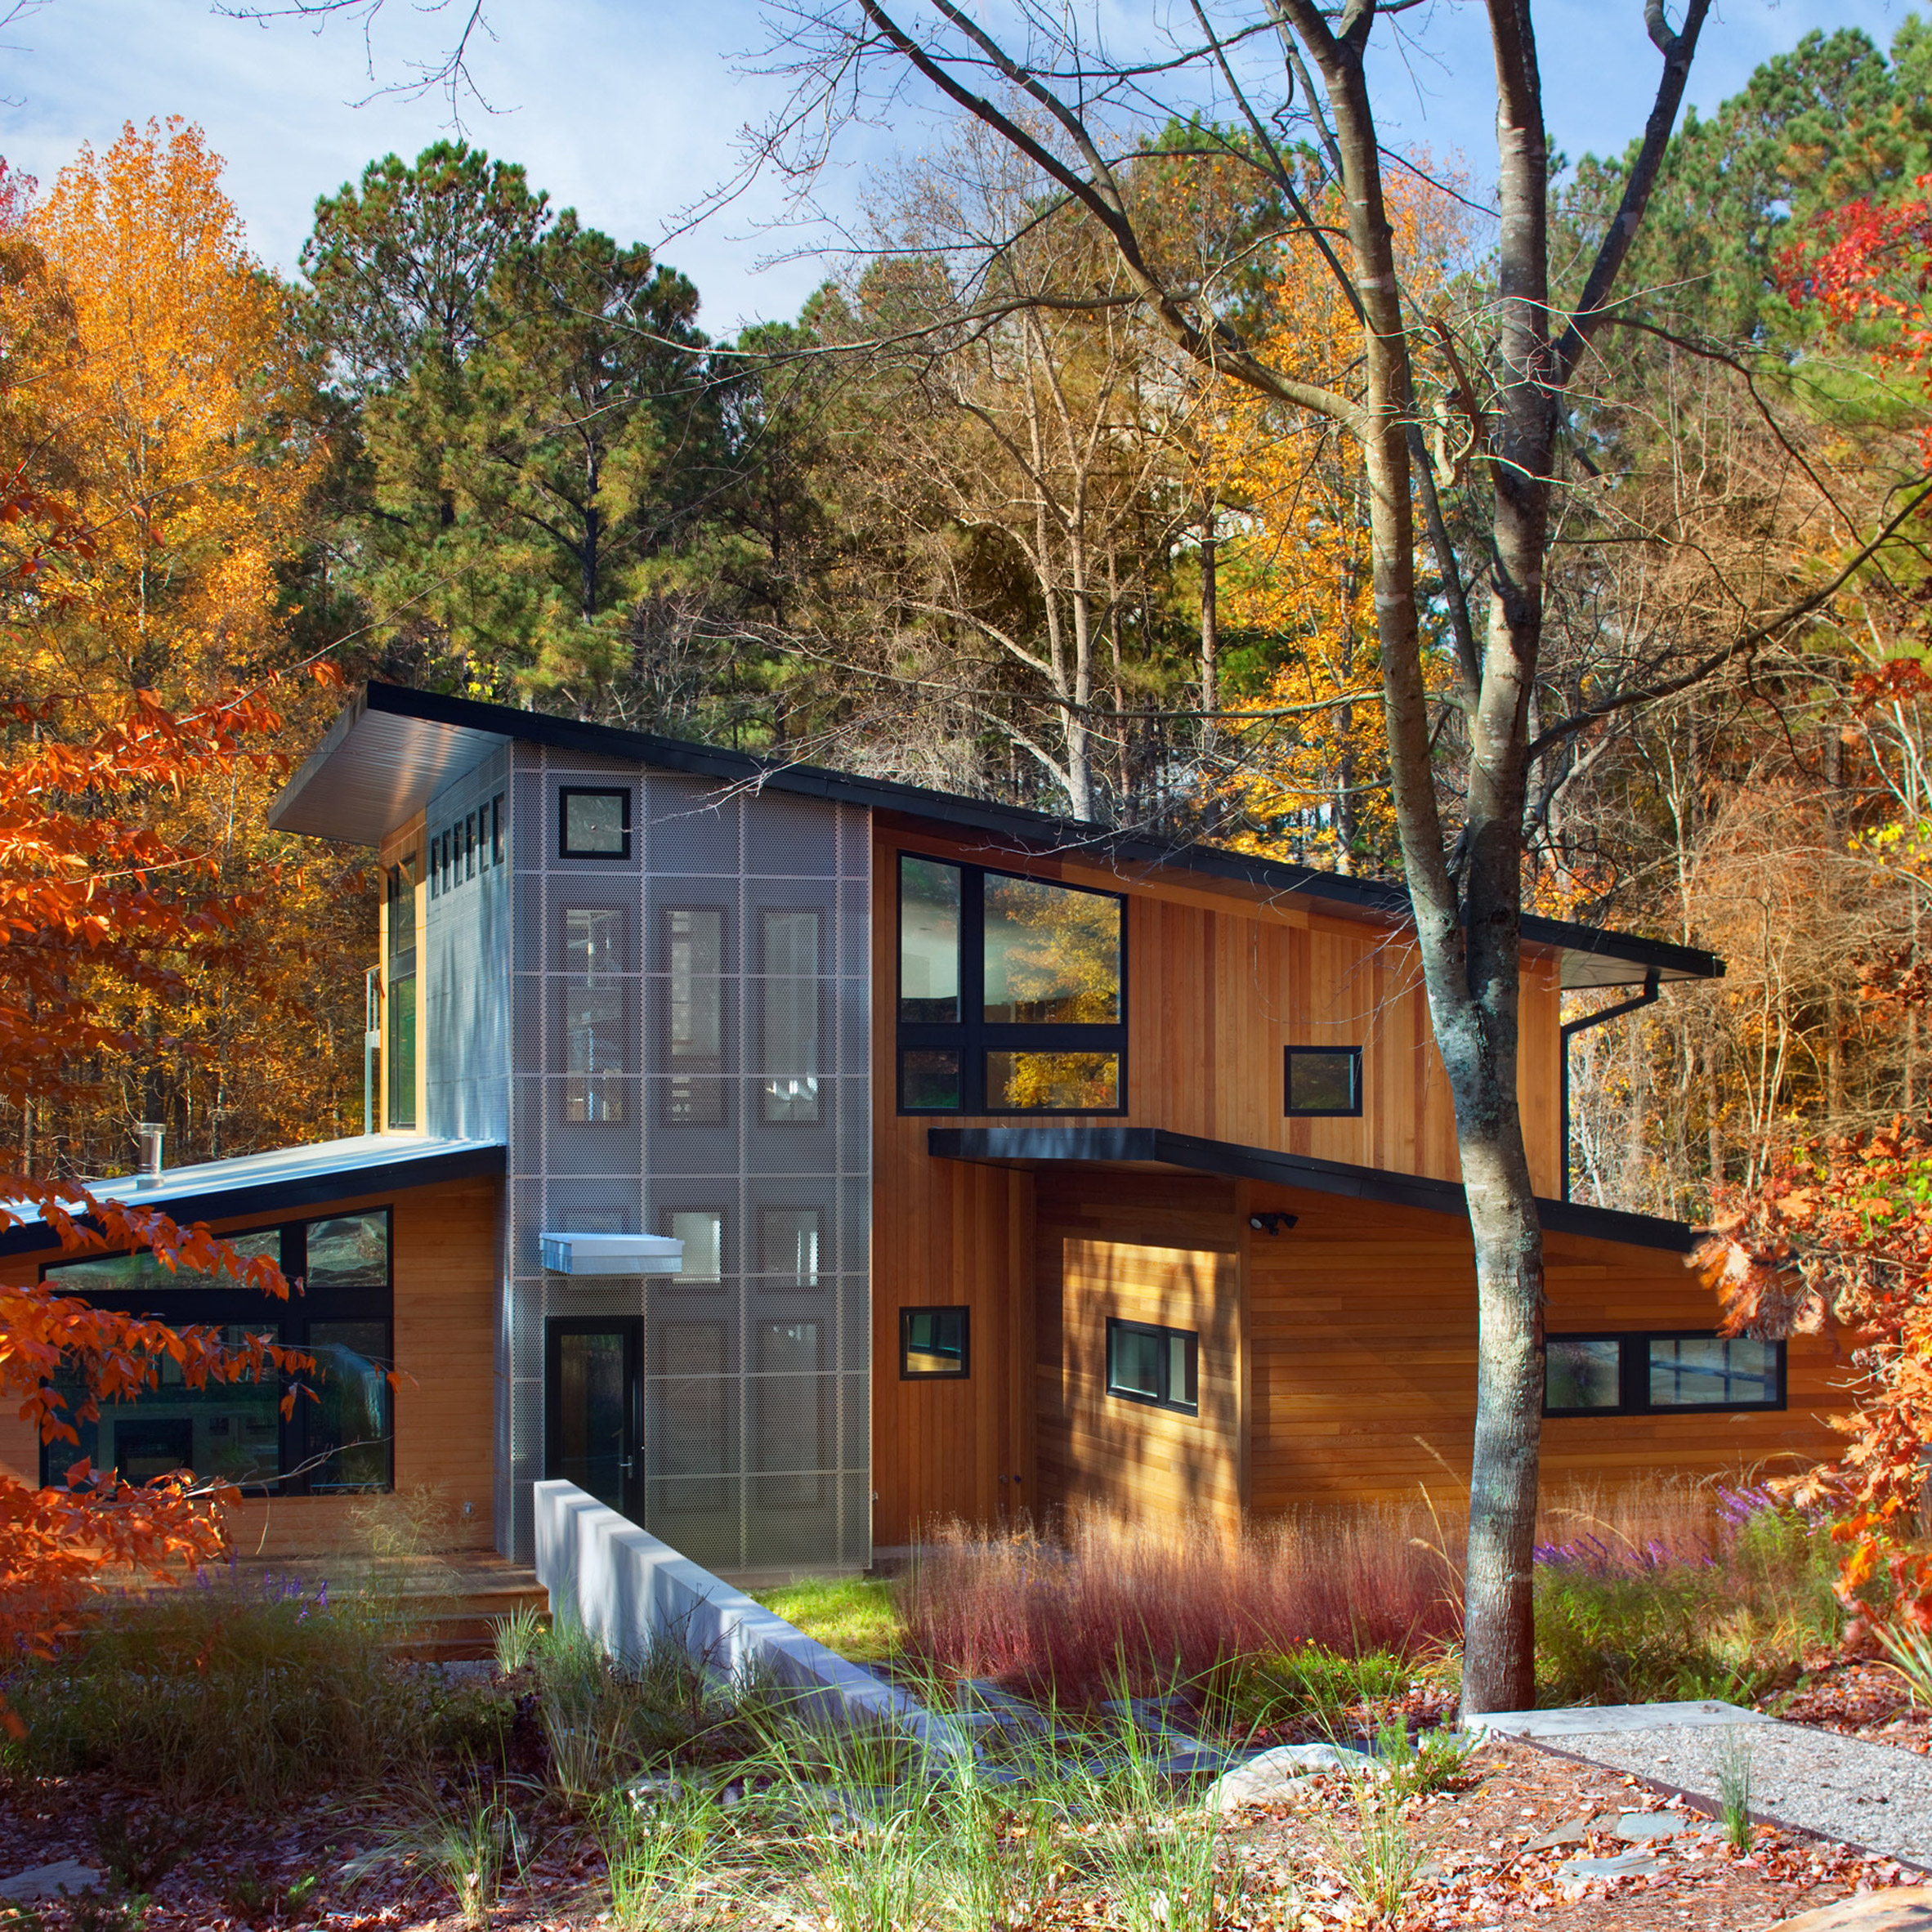 North Carolina Home By Buildsense Reuses Materials From Previous Building  On Site